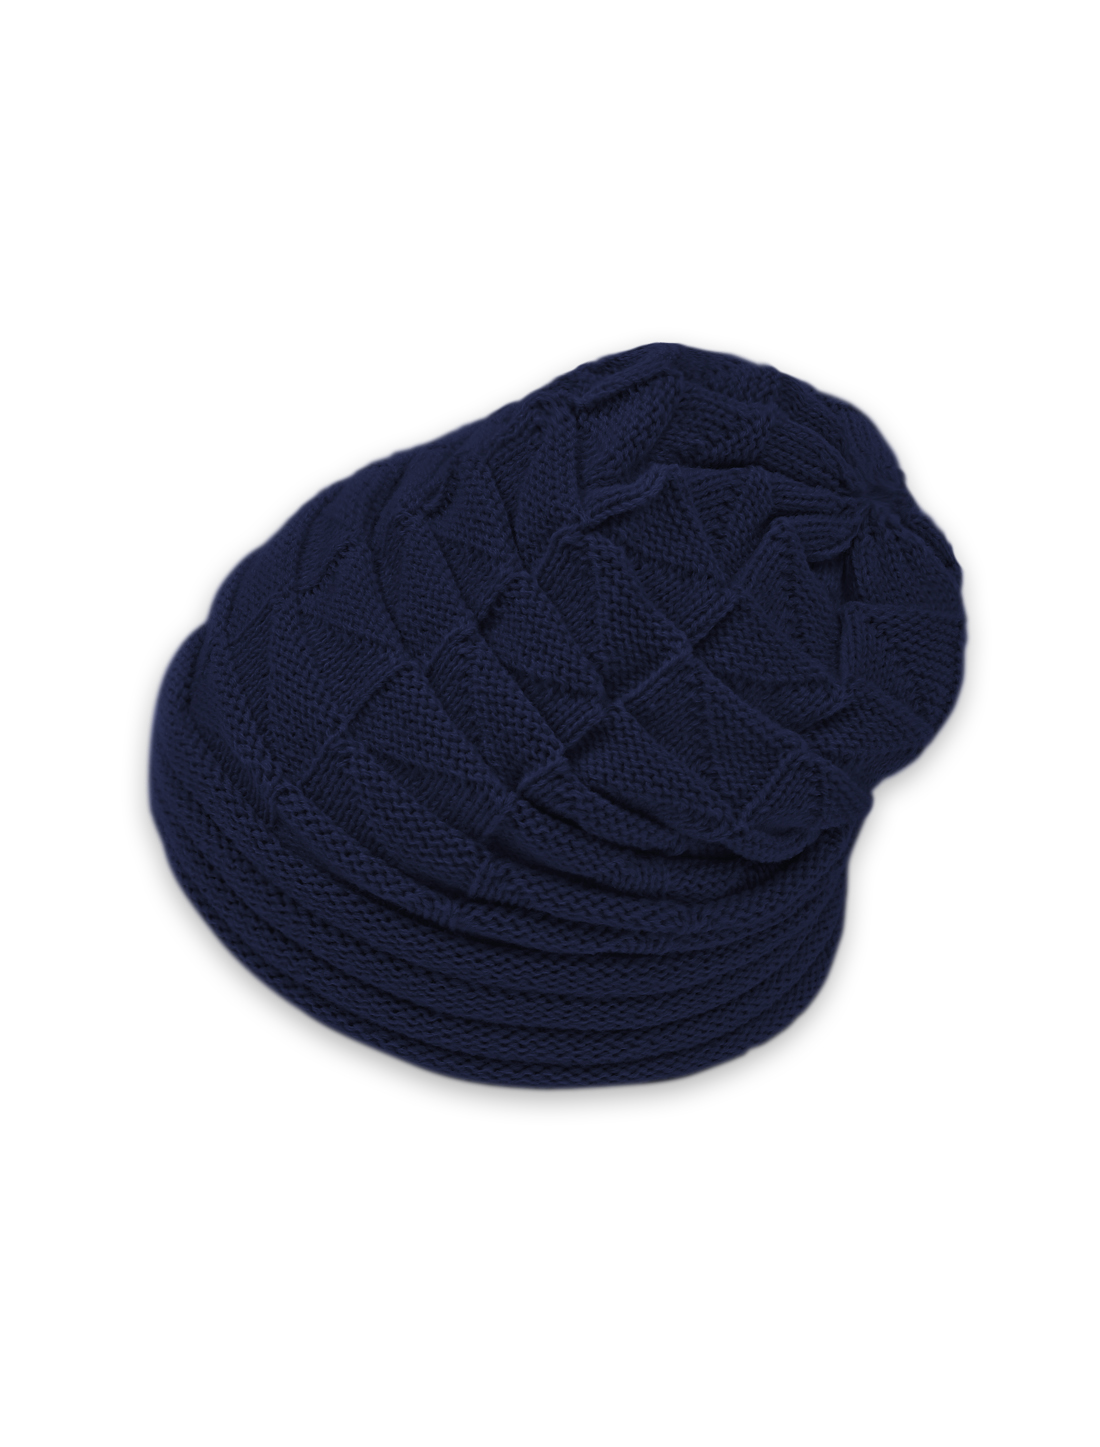 Unisex Roll Up Hem Triangle Pattern Stretchy Knit Beanie Hat Blue